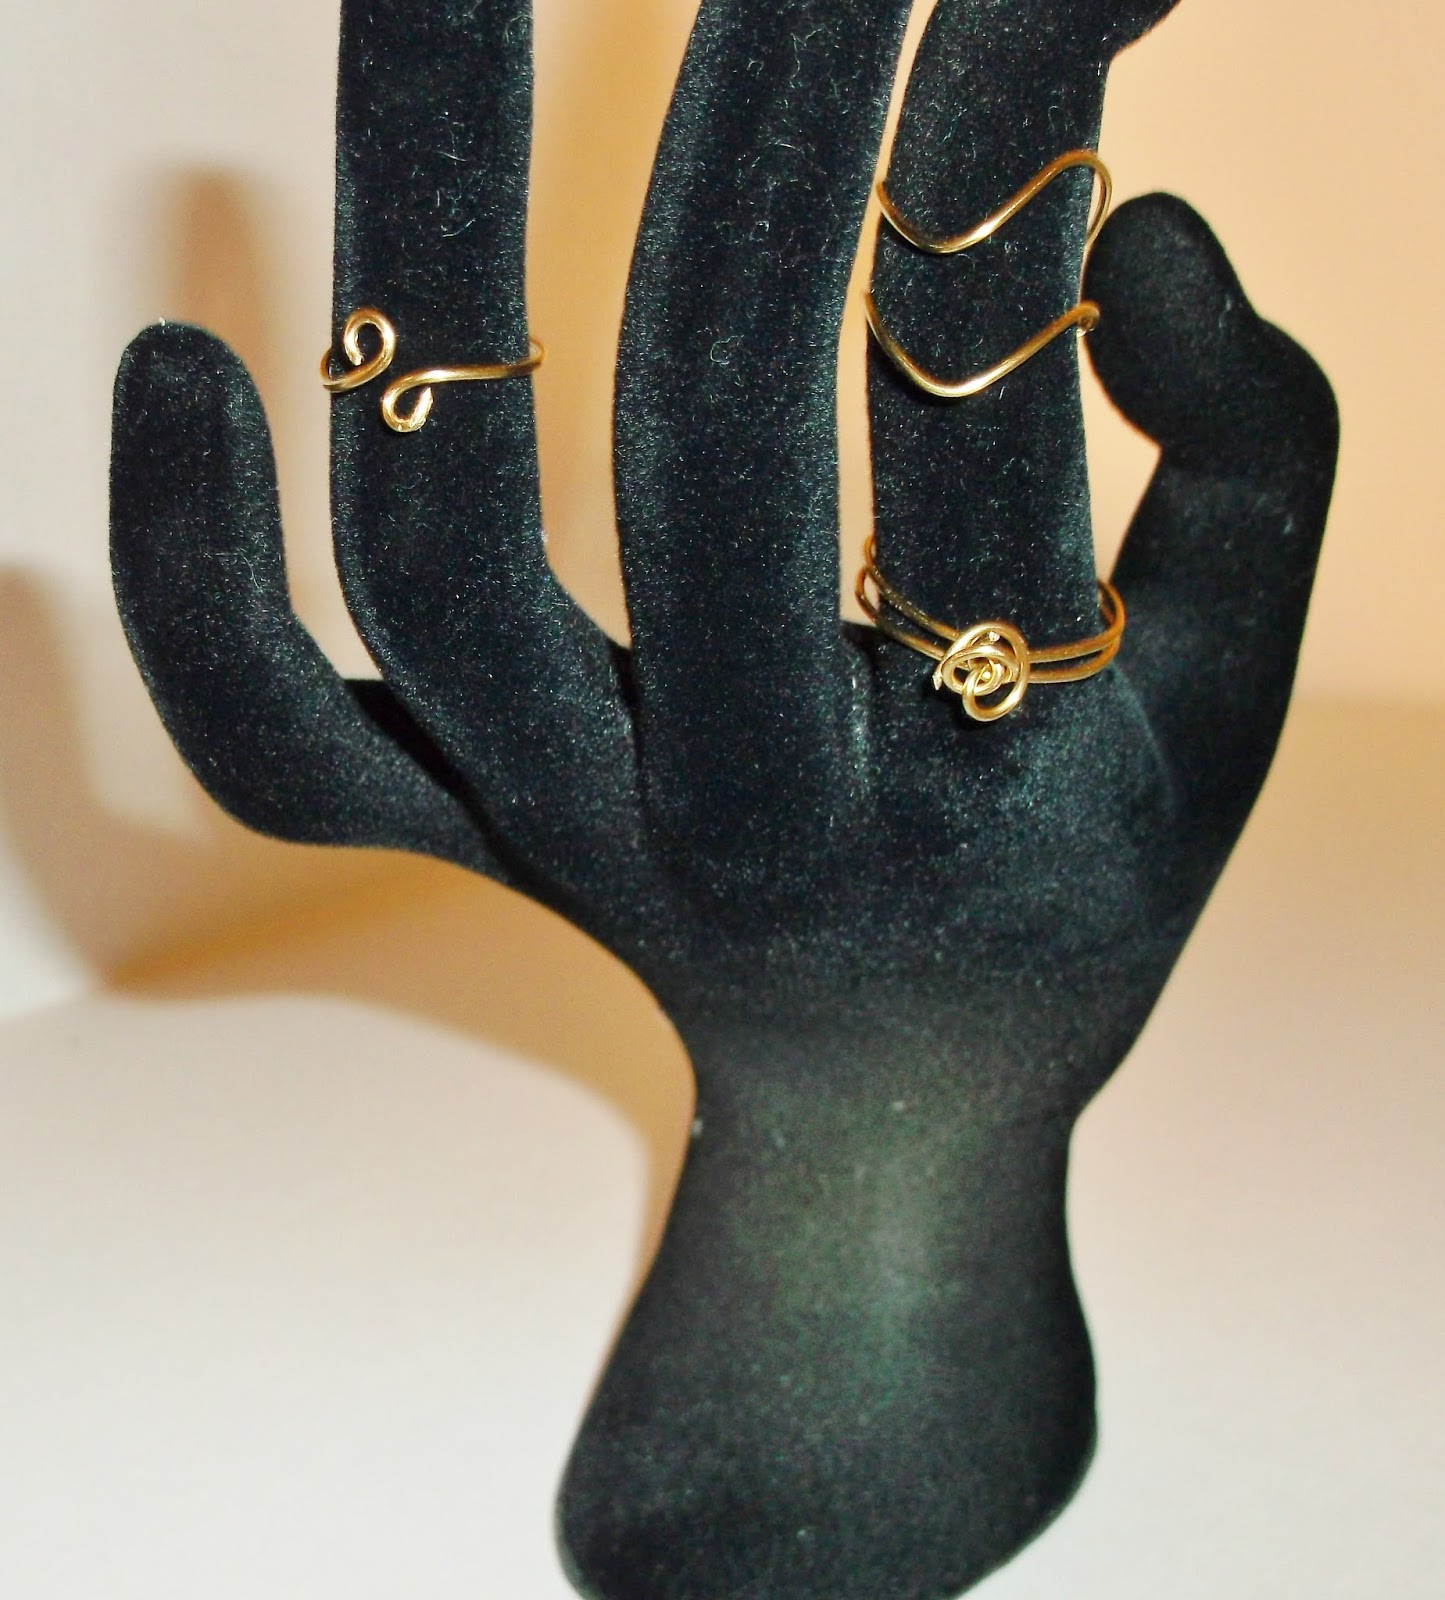 New! Brass Mid Finger Handmade Rings